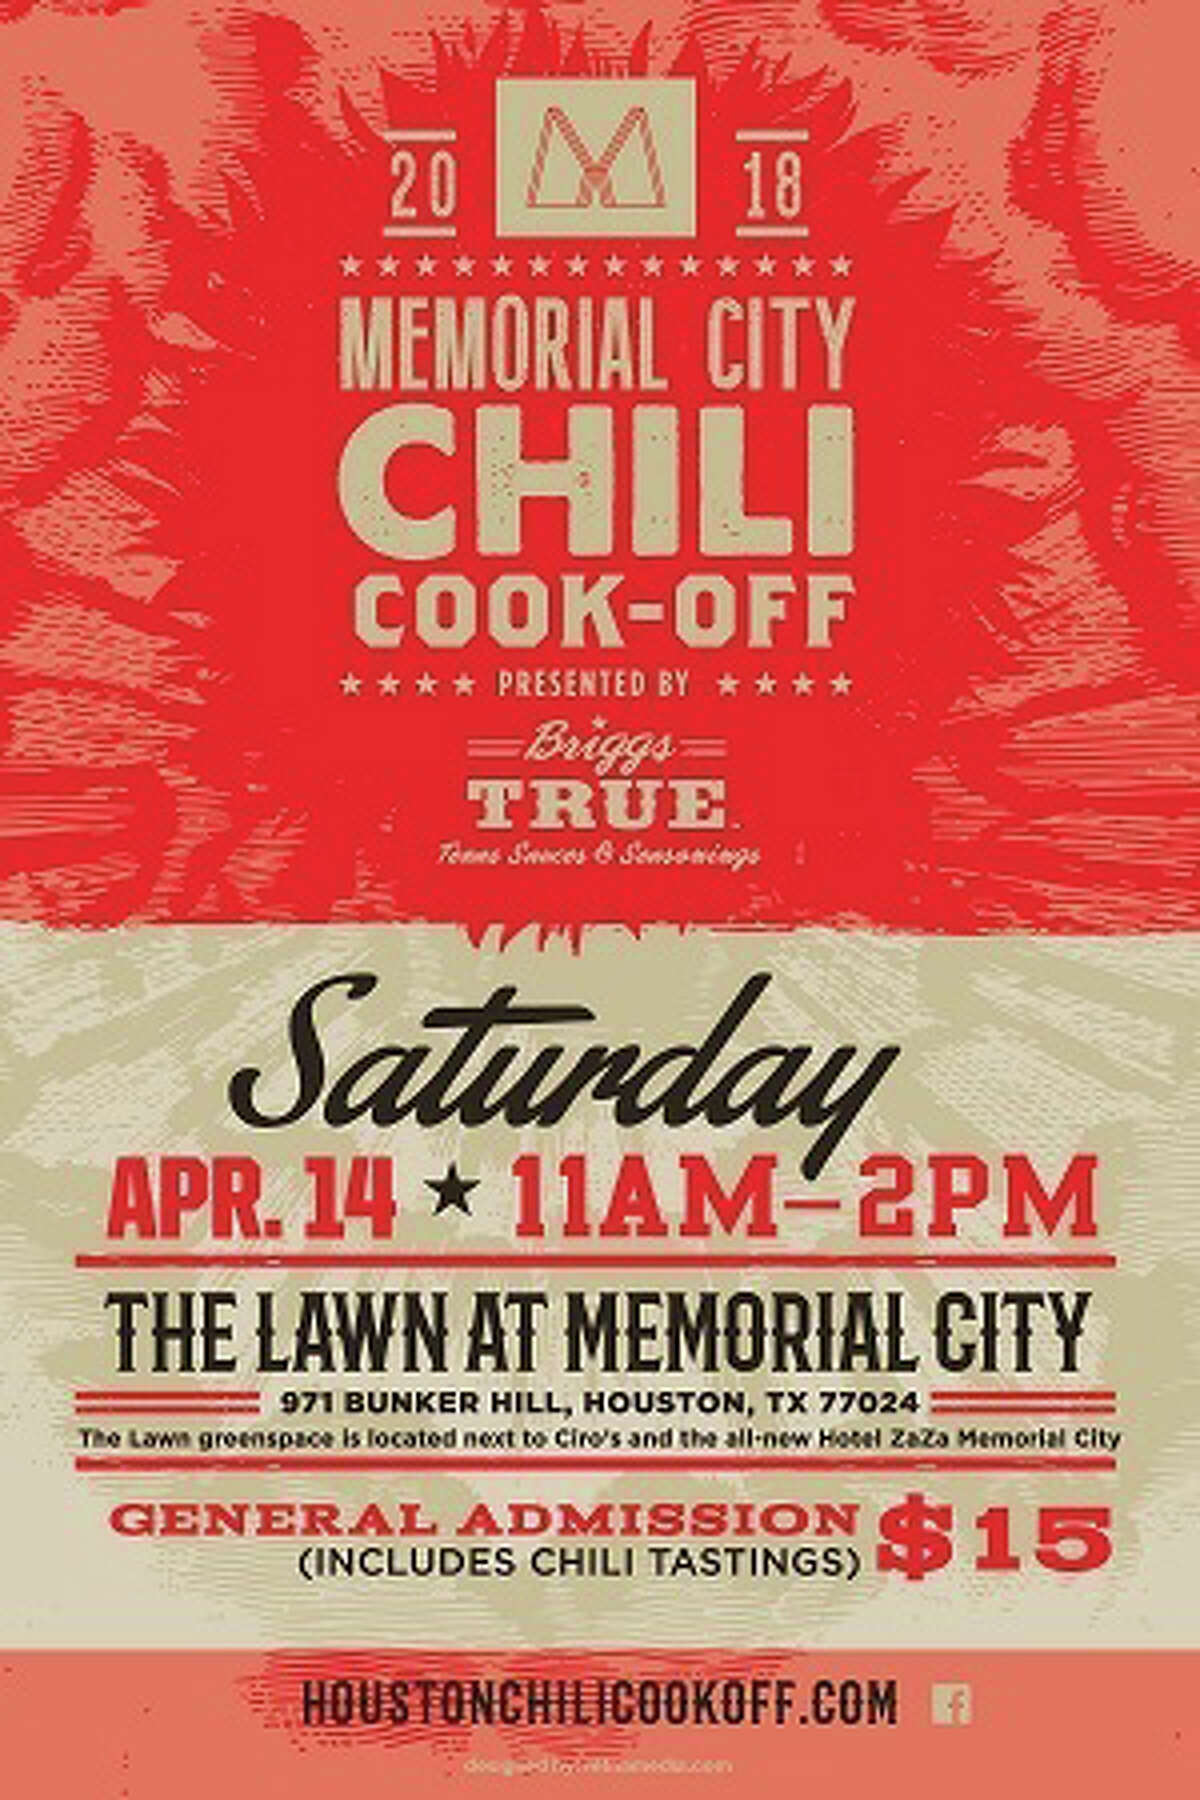 The 2018 Memorial City Chili Cook-Off Presented by Briggs True will be held April 14 from 11 a.m. to 2 p.m. at the Lawn in front of the new Hotel ZaZa.